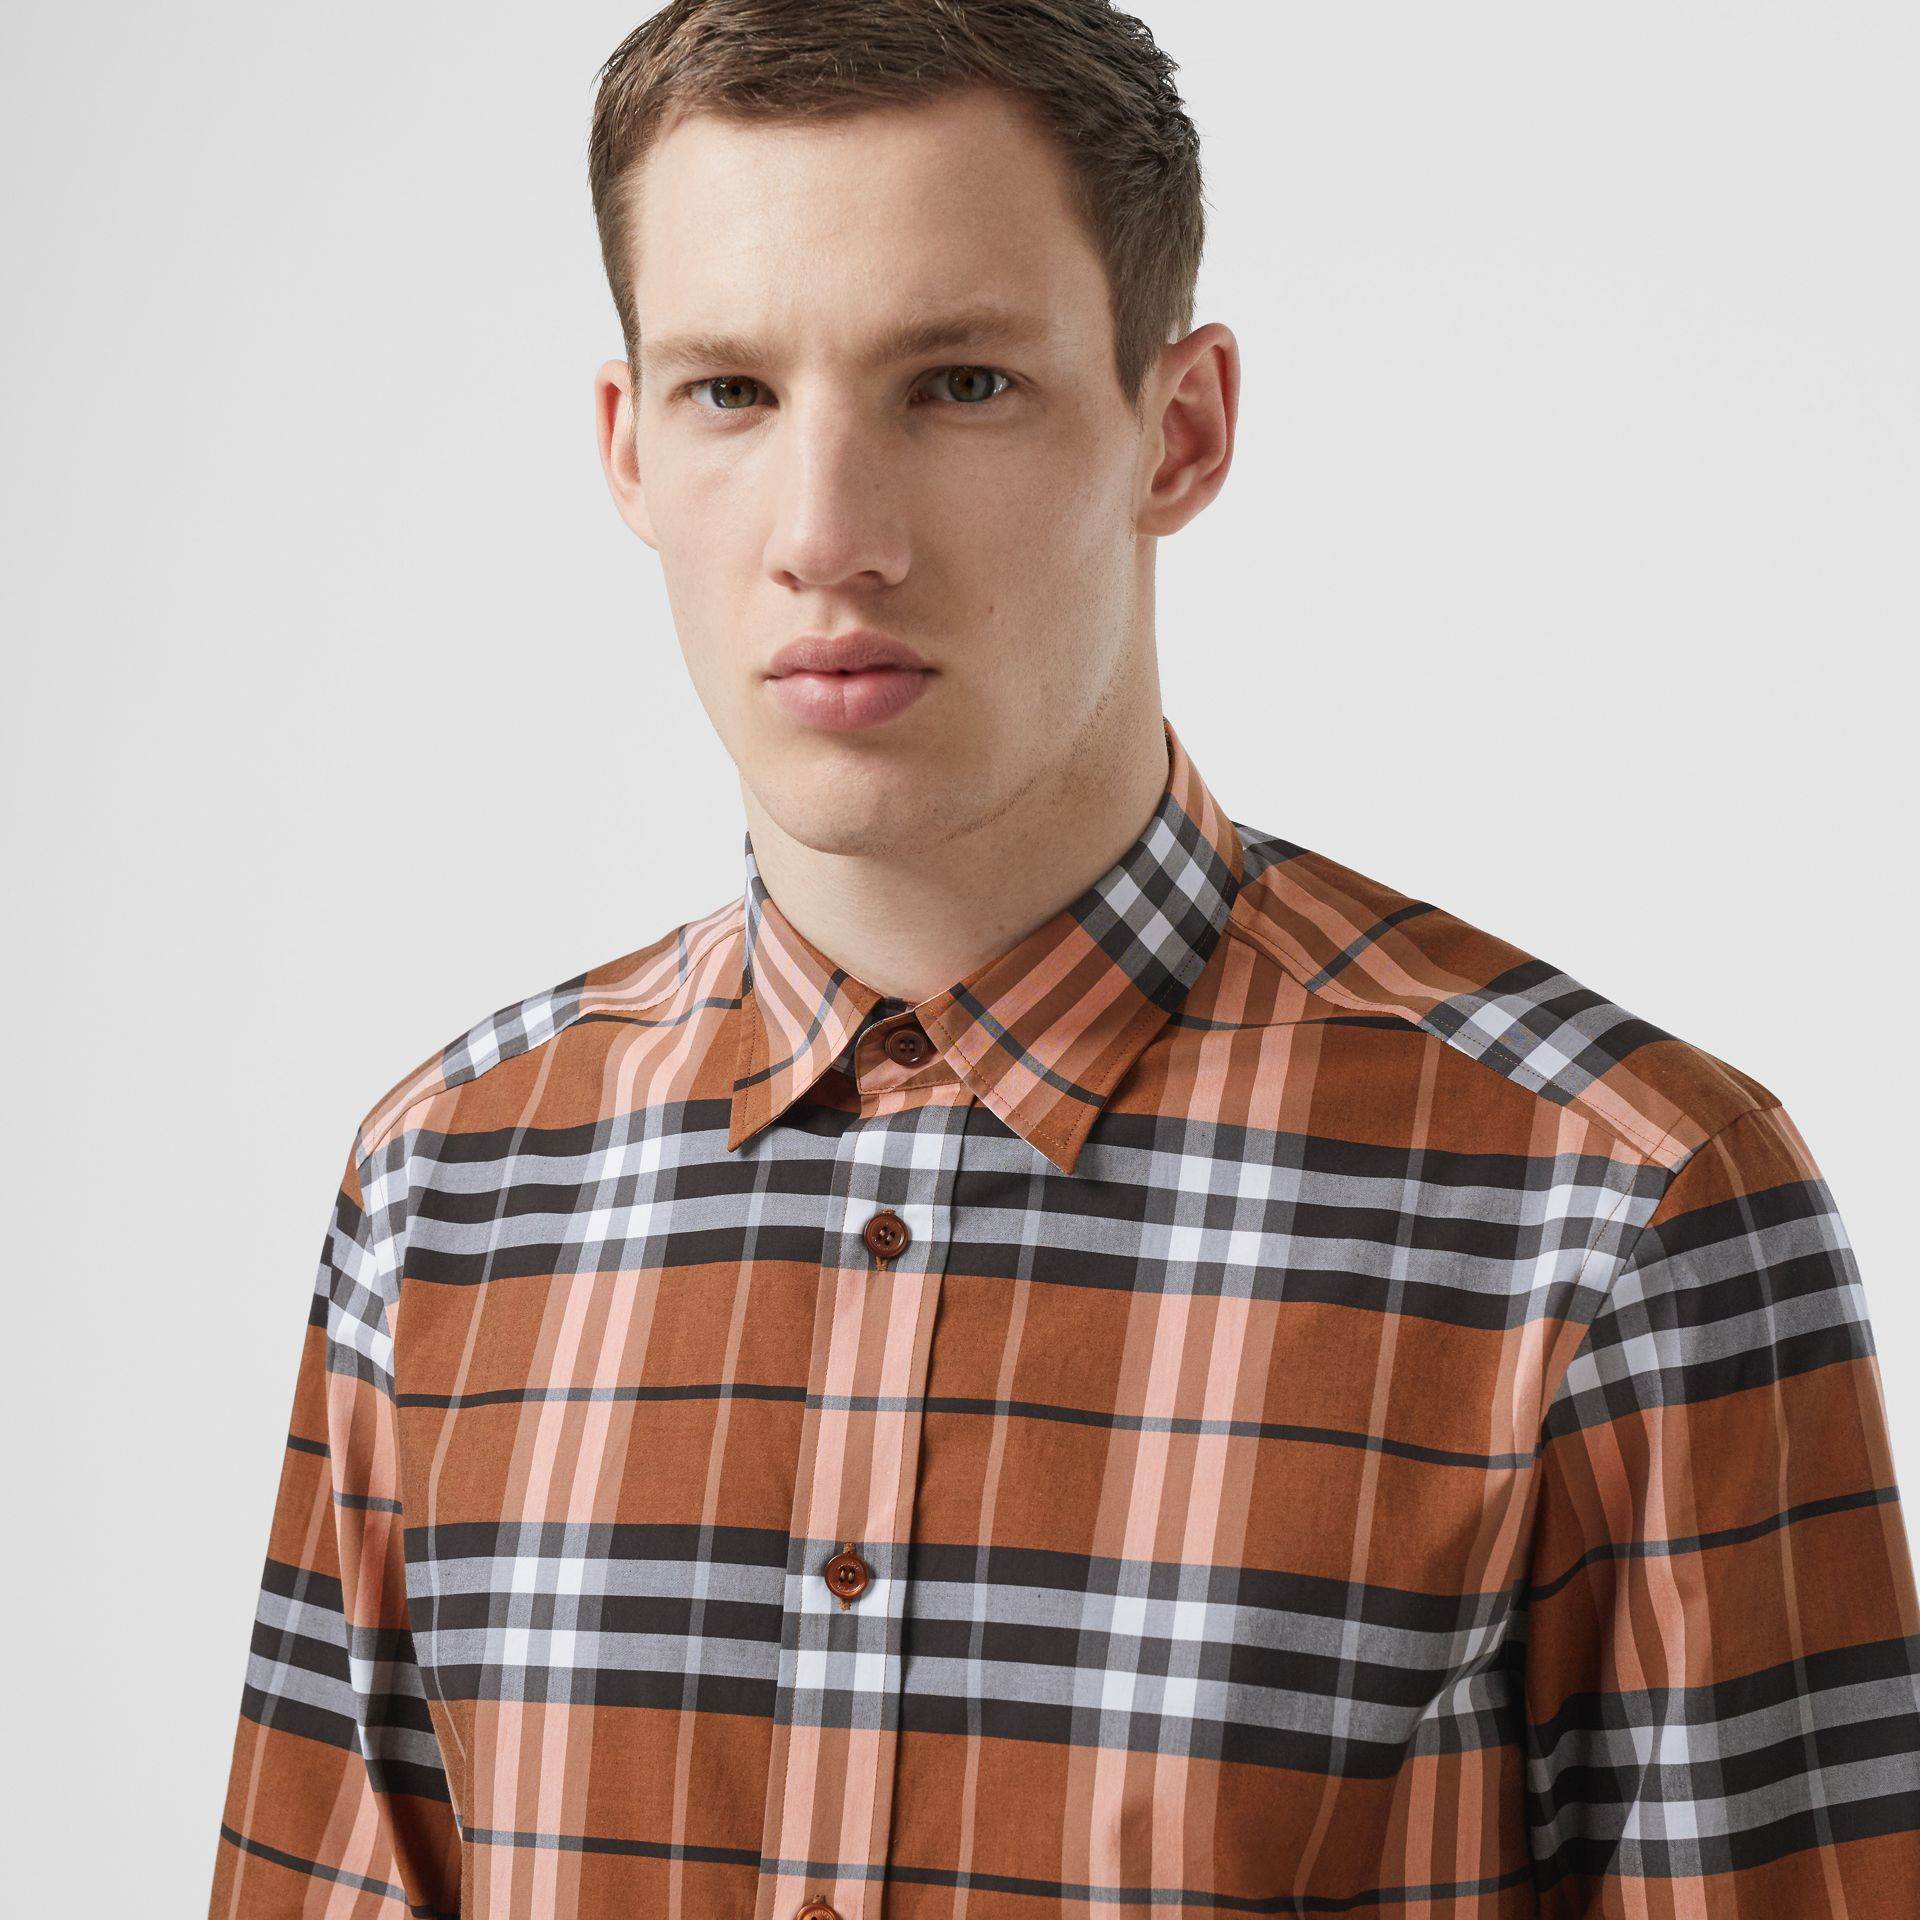 Vintage Check Cotton Poplin Shirt in Clementine - Men | Burberry Australia - gallery image 4